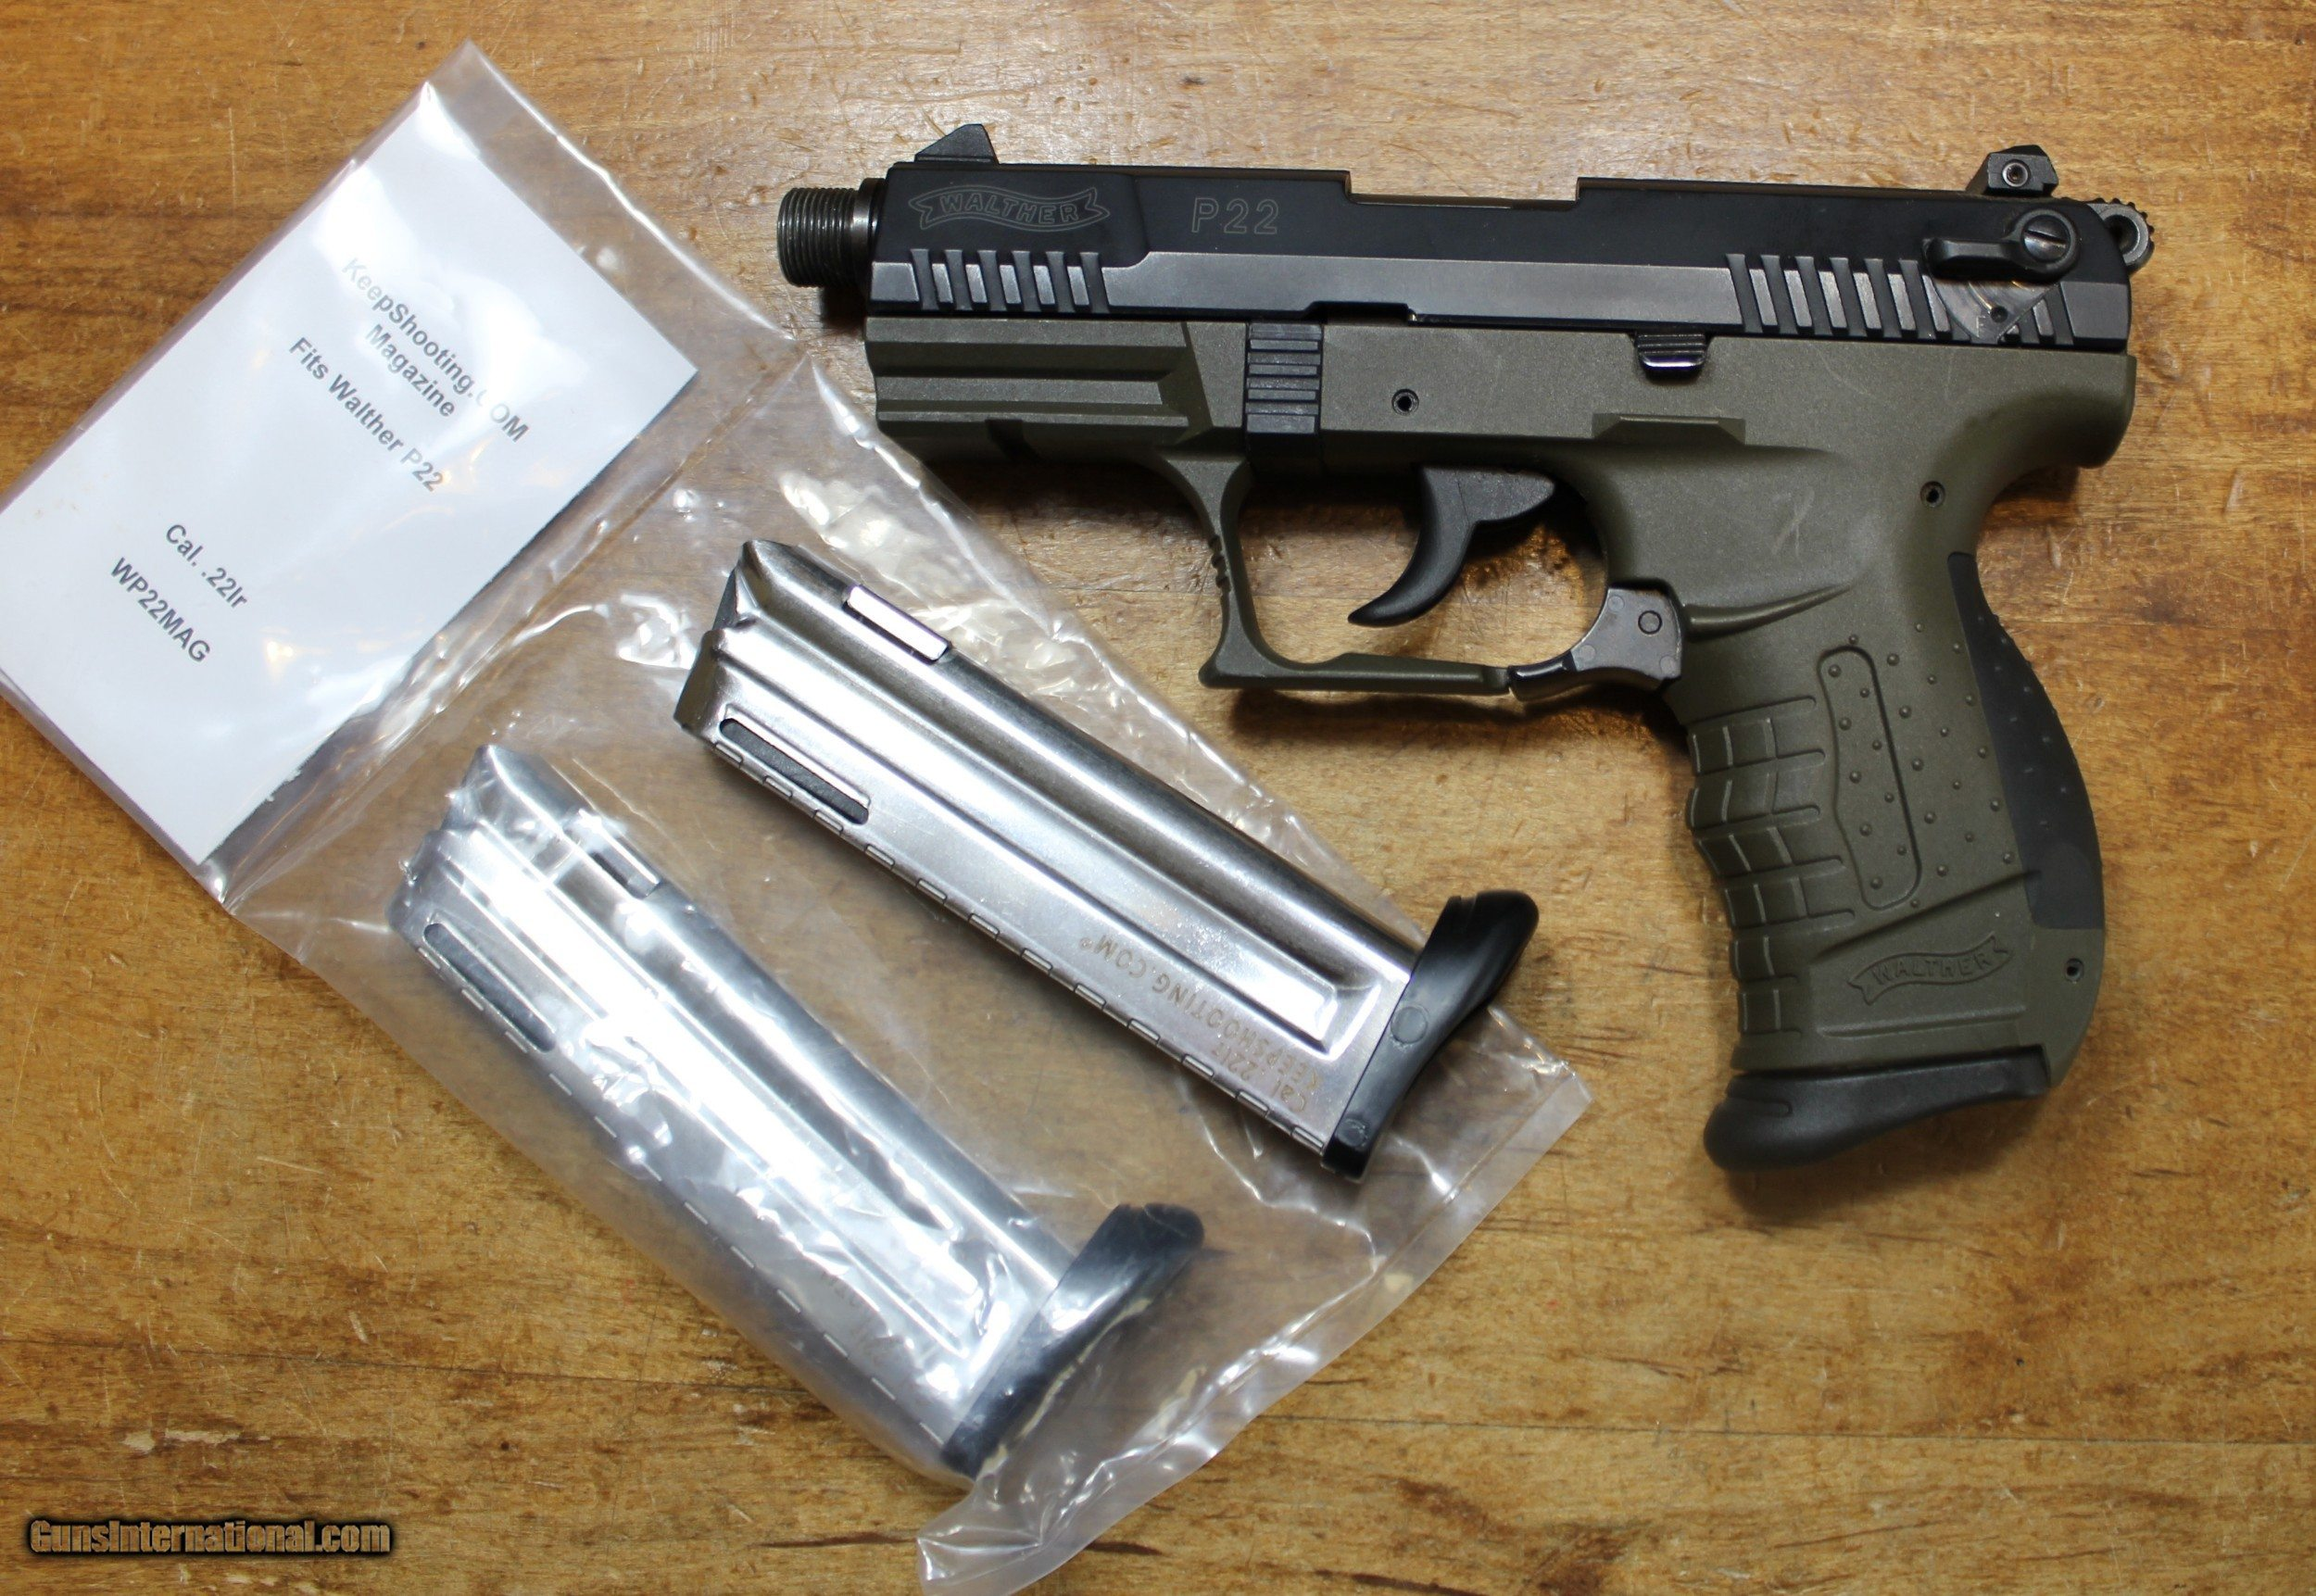 Walther P22 22LR with Threaded Barrel and 3 magazines for sale